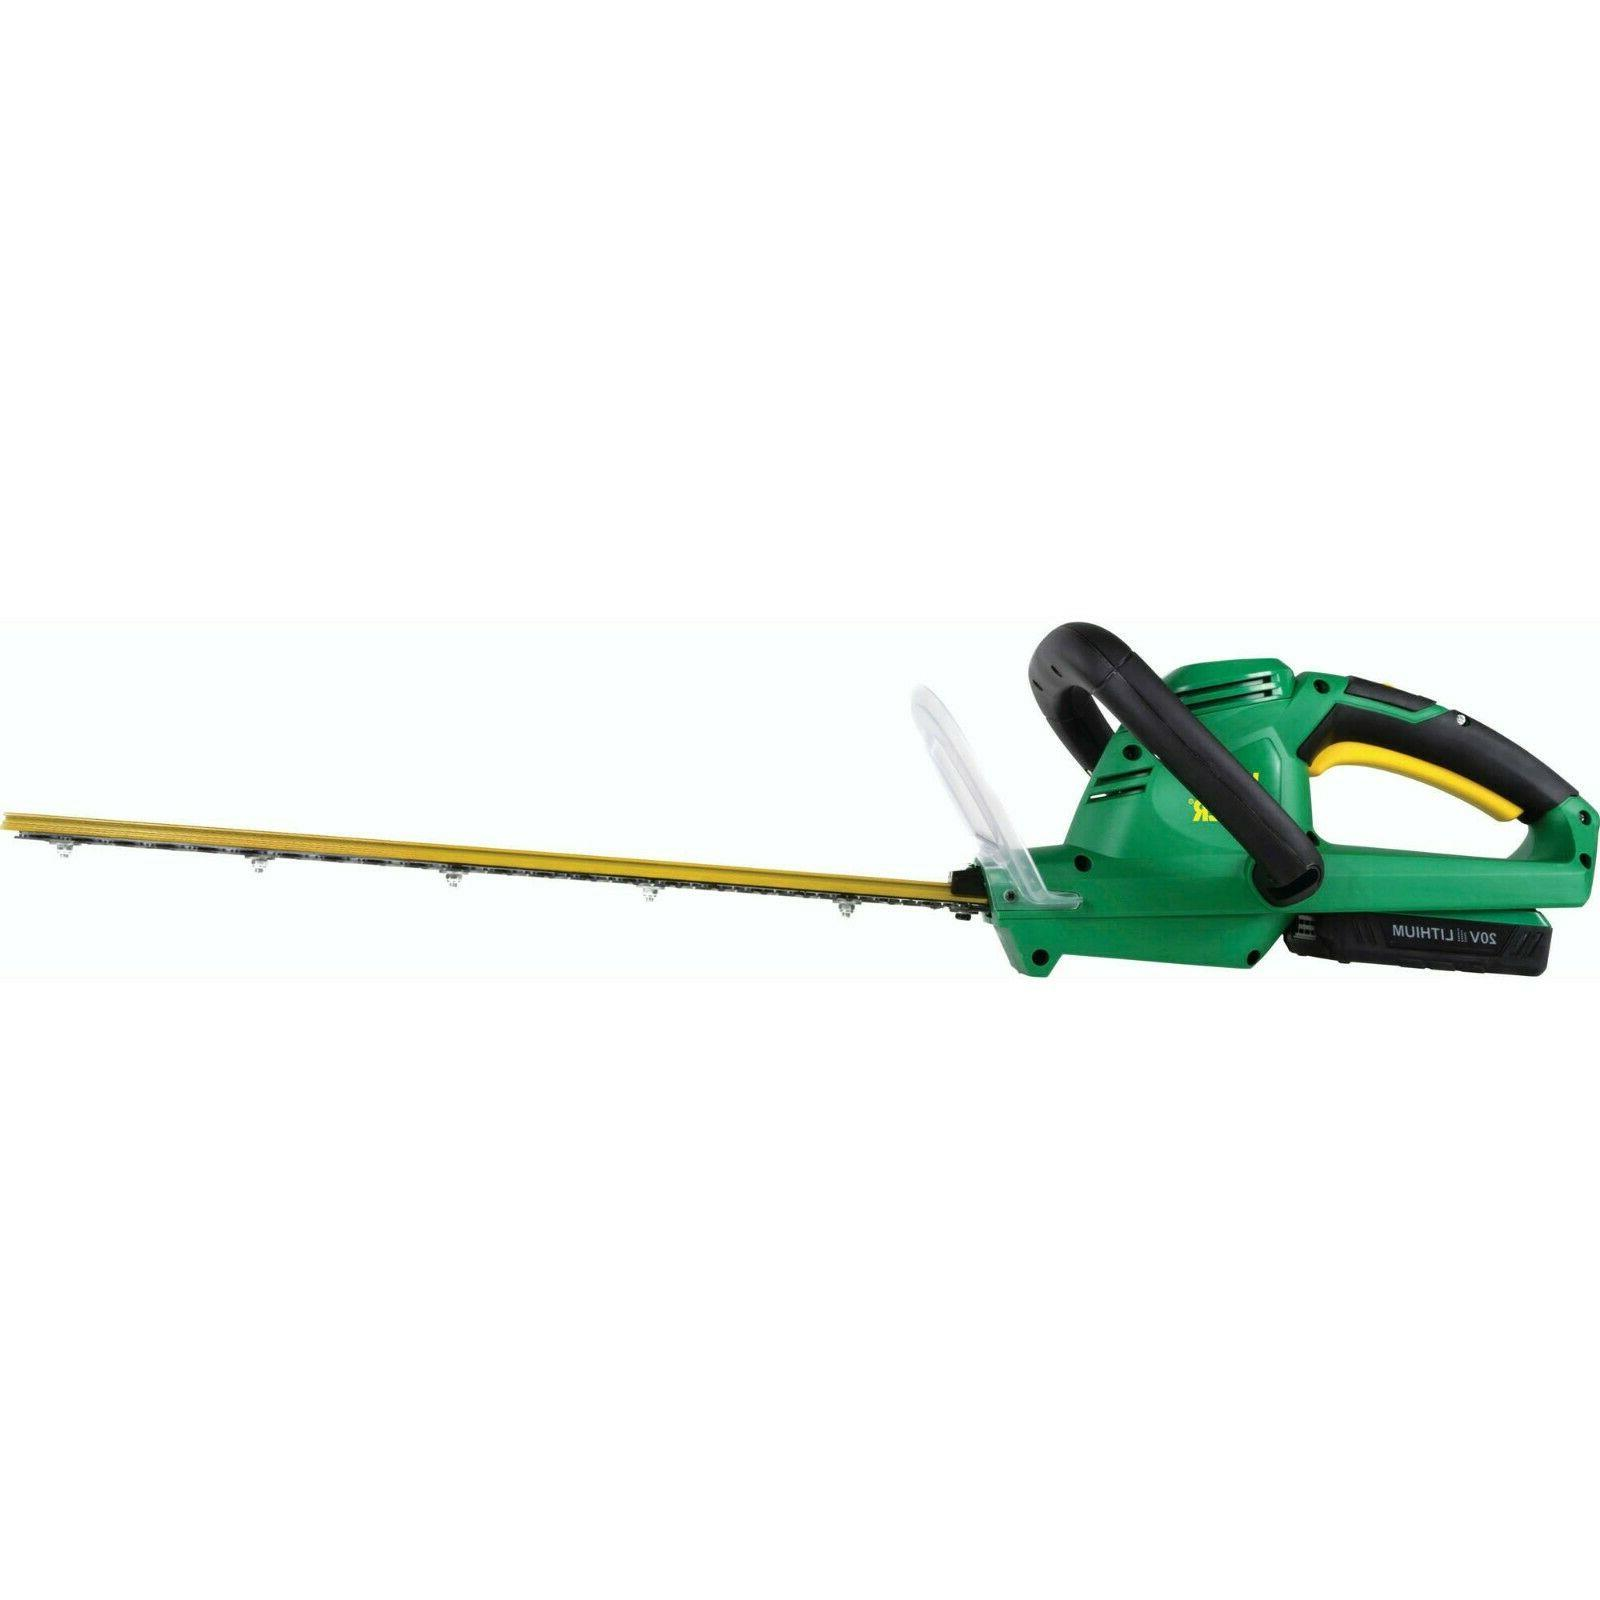 Long Hedge Trimmer Cordless Bush Trimmers Edger Edgers 20 Vo